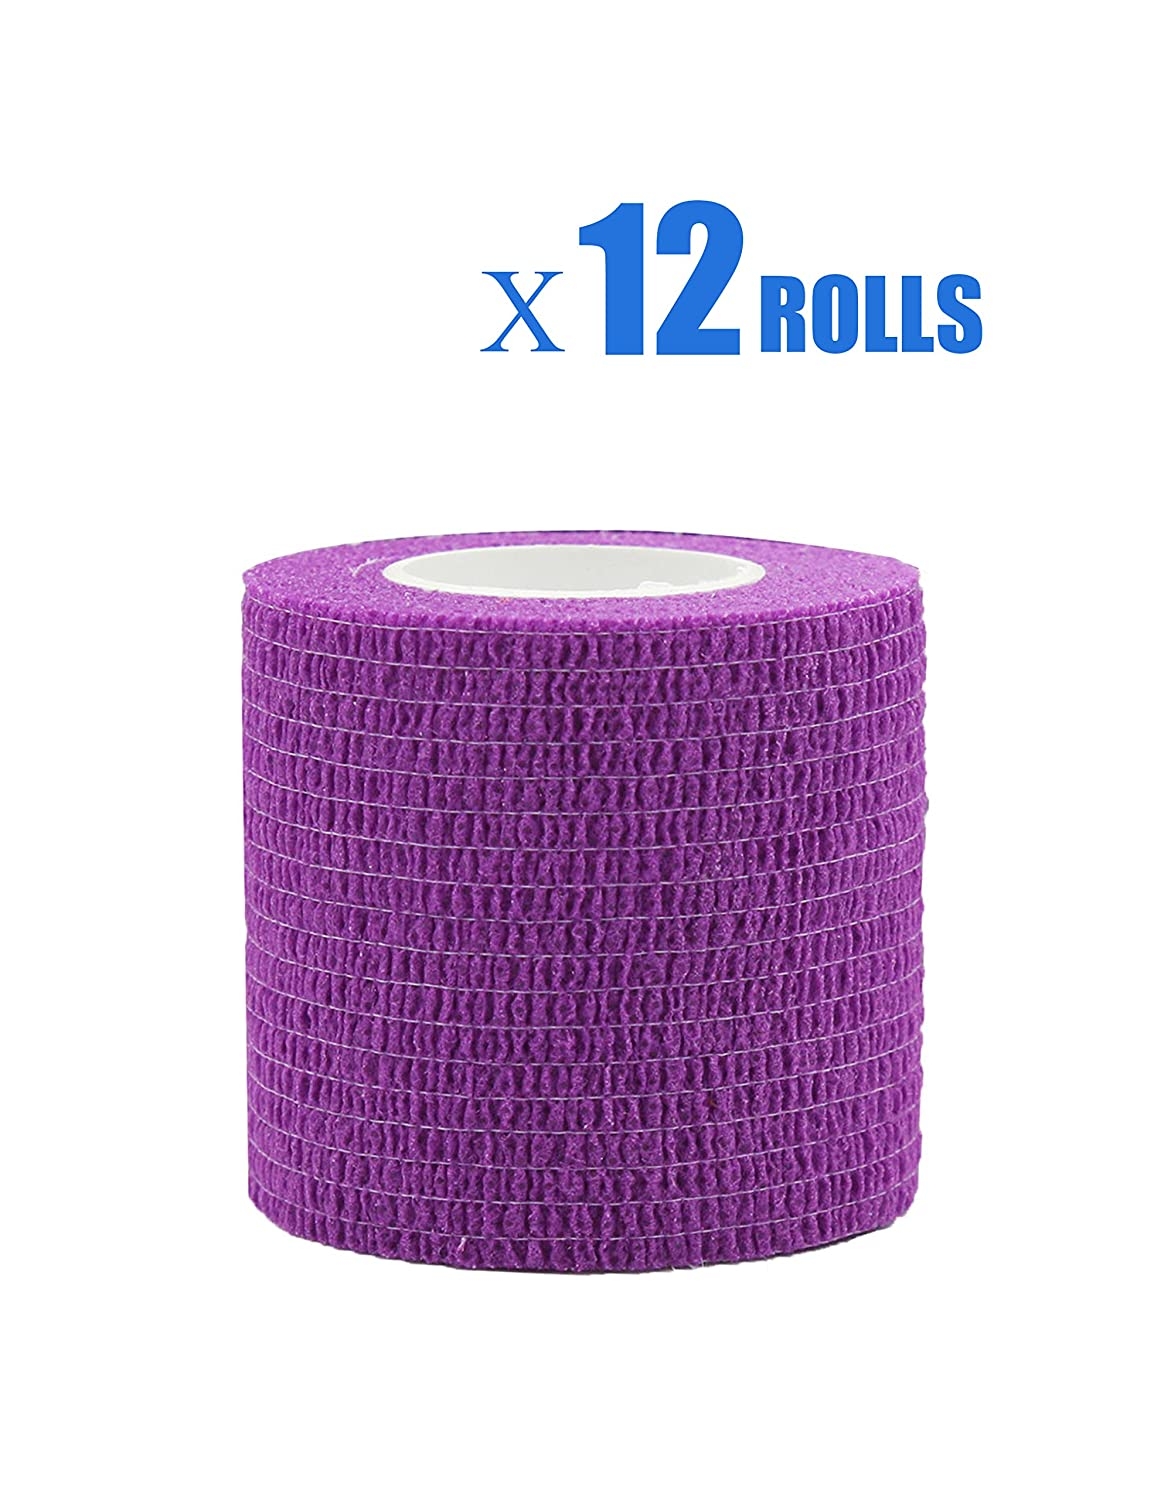 Risscly Lila 5cm cohesive Bandage,selbsthaftende fixierbinde verband bandage mullbinden selbsthaftend bandagen 12 Rollen